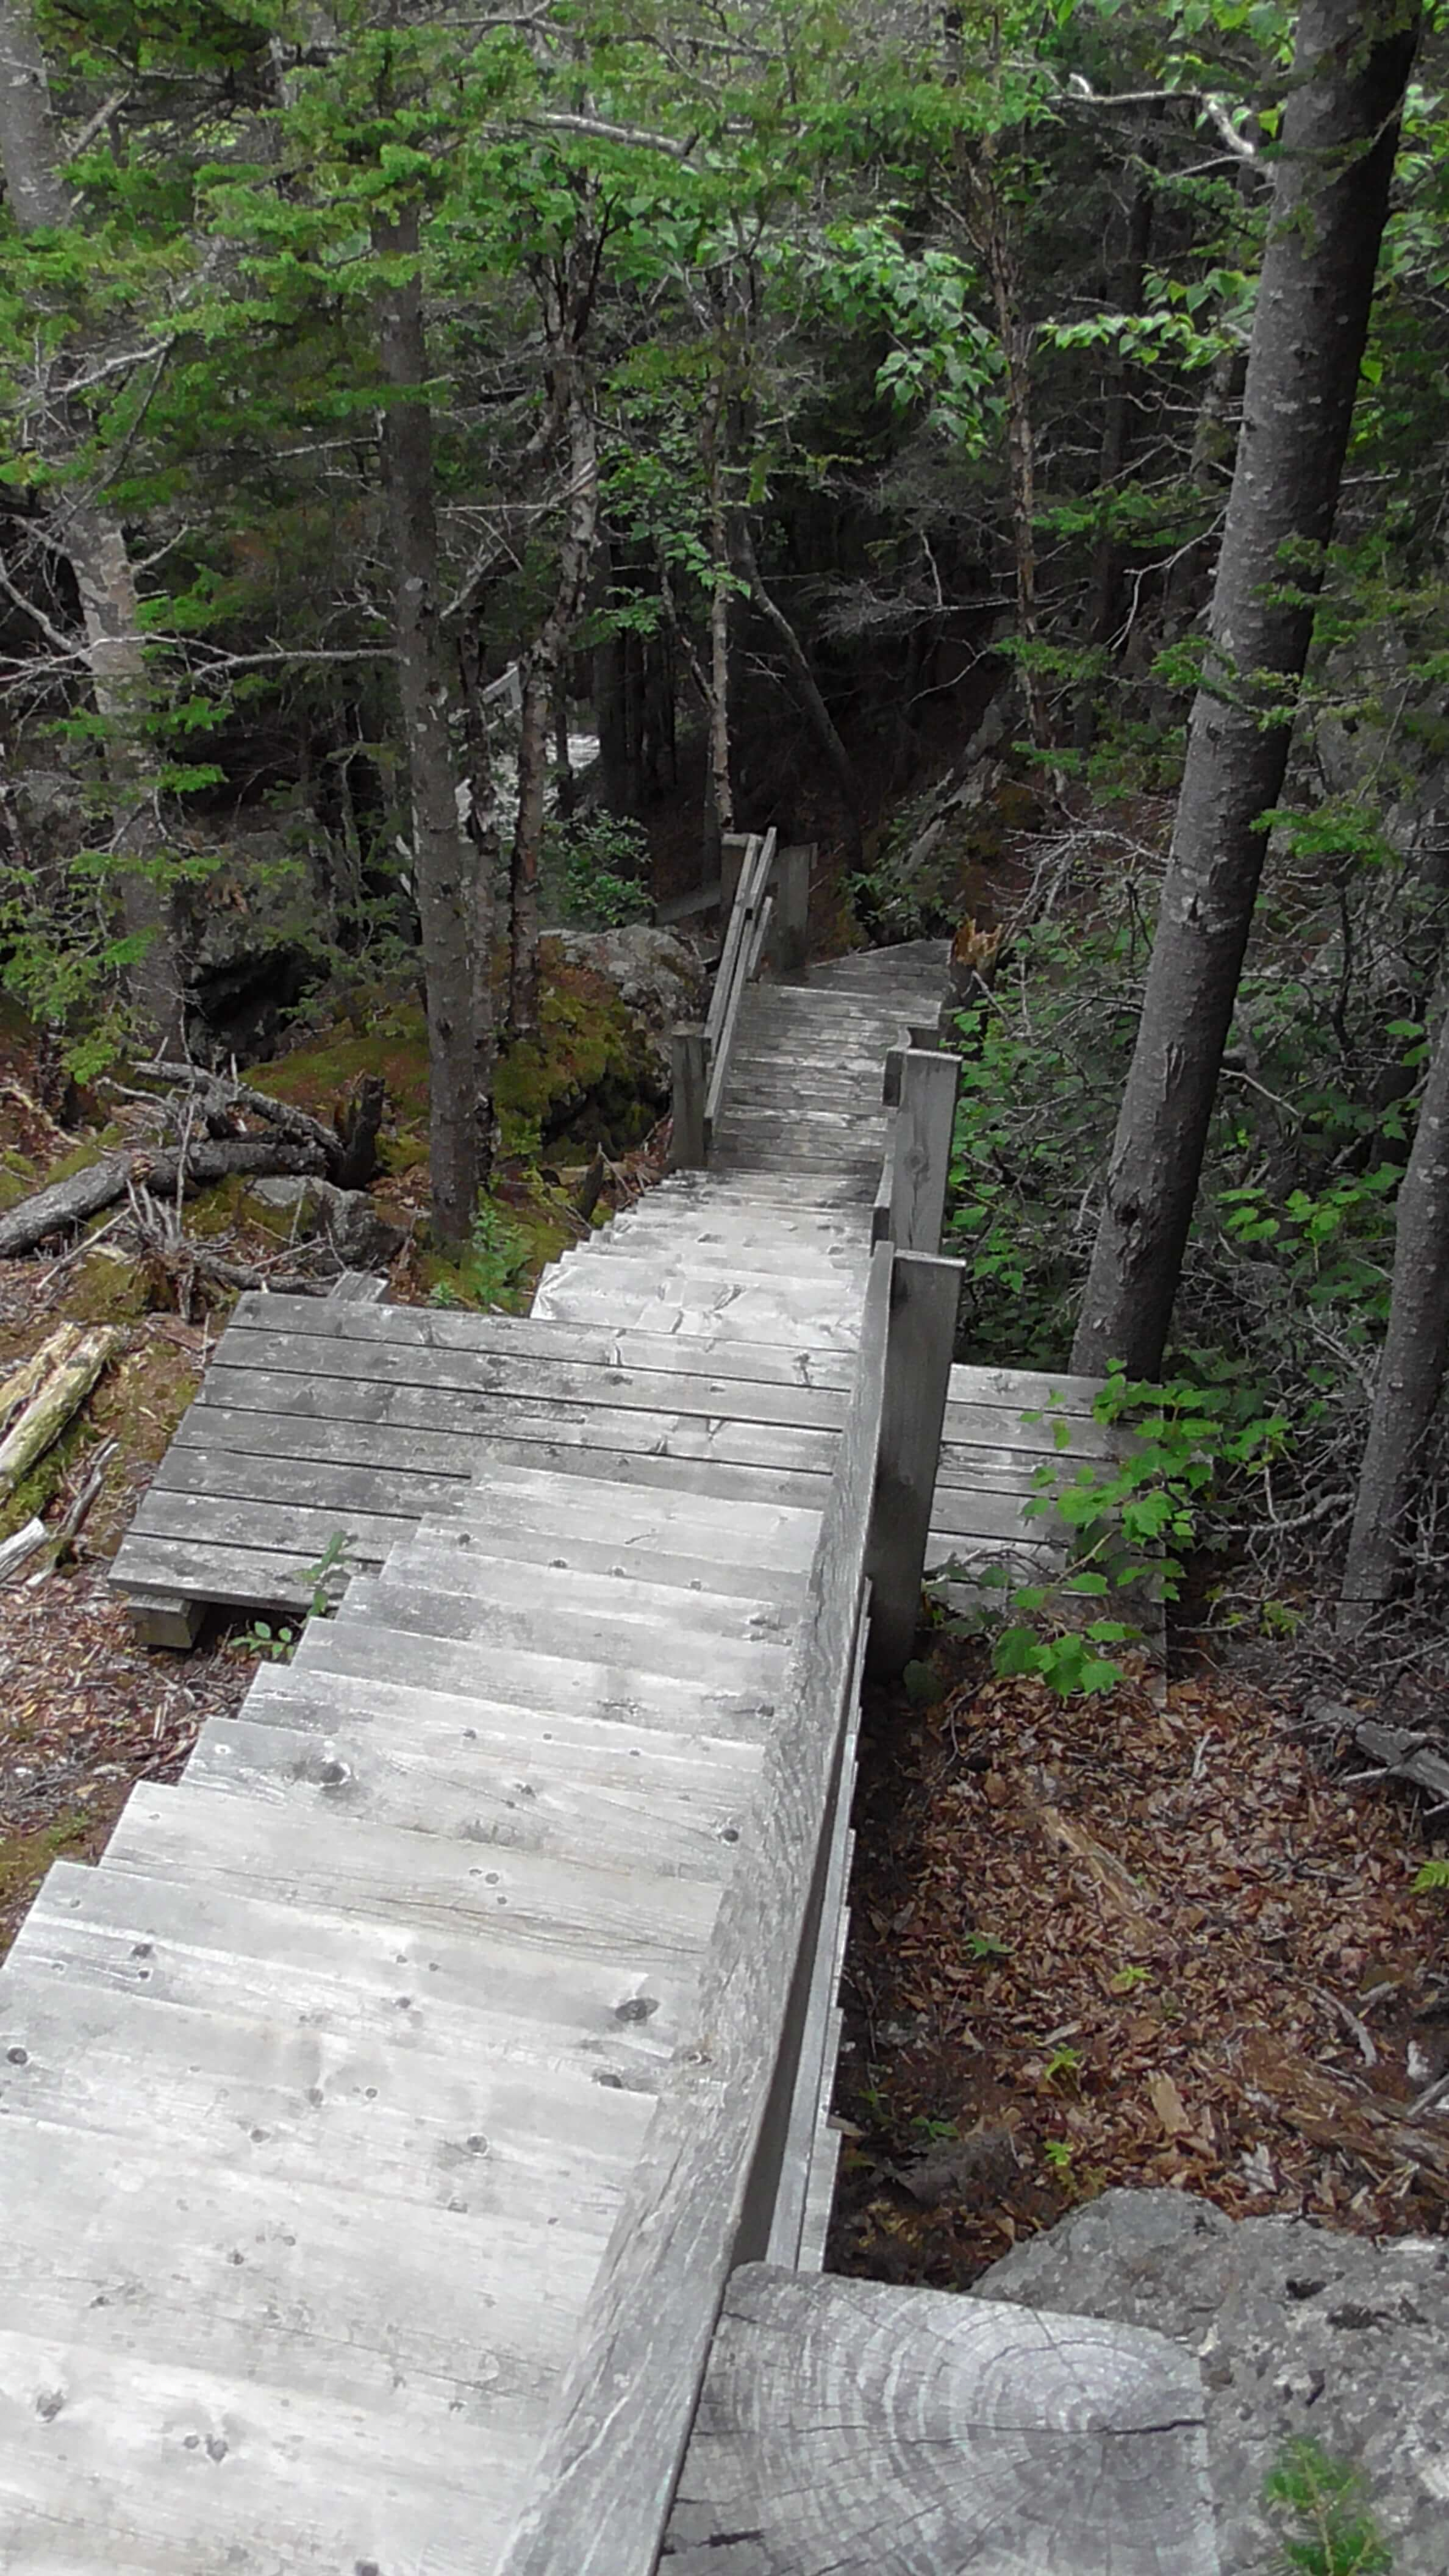 Just a few of the steps up to Sunset Hill